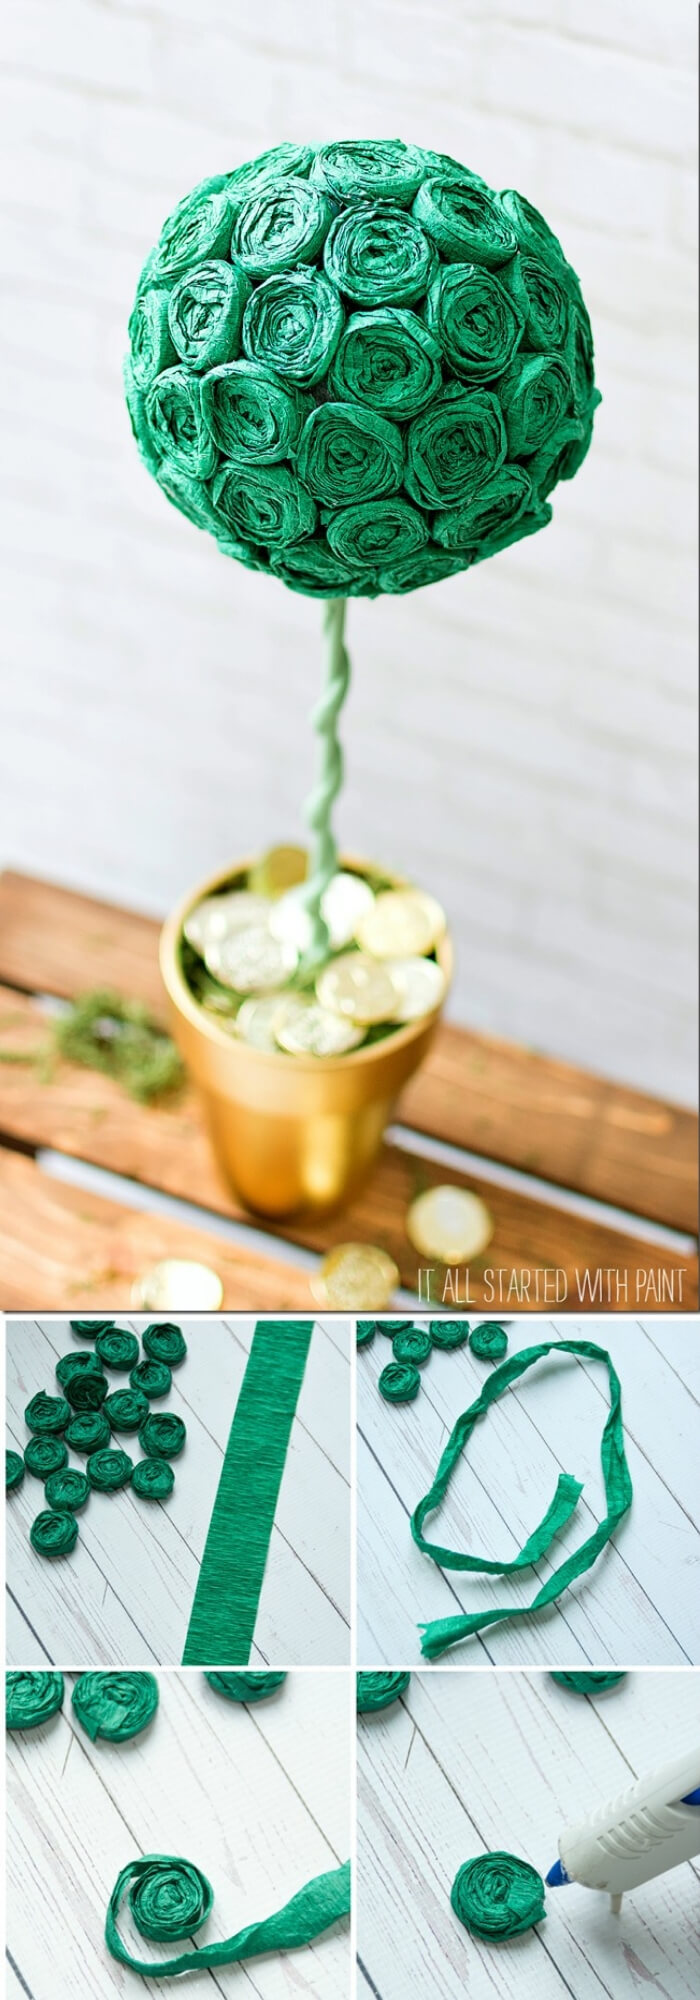 Dollar store topiary for St. Patrick's Day | Creative St. Patrick's Day Decor Ideas